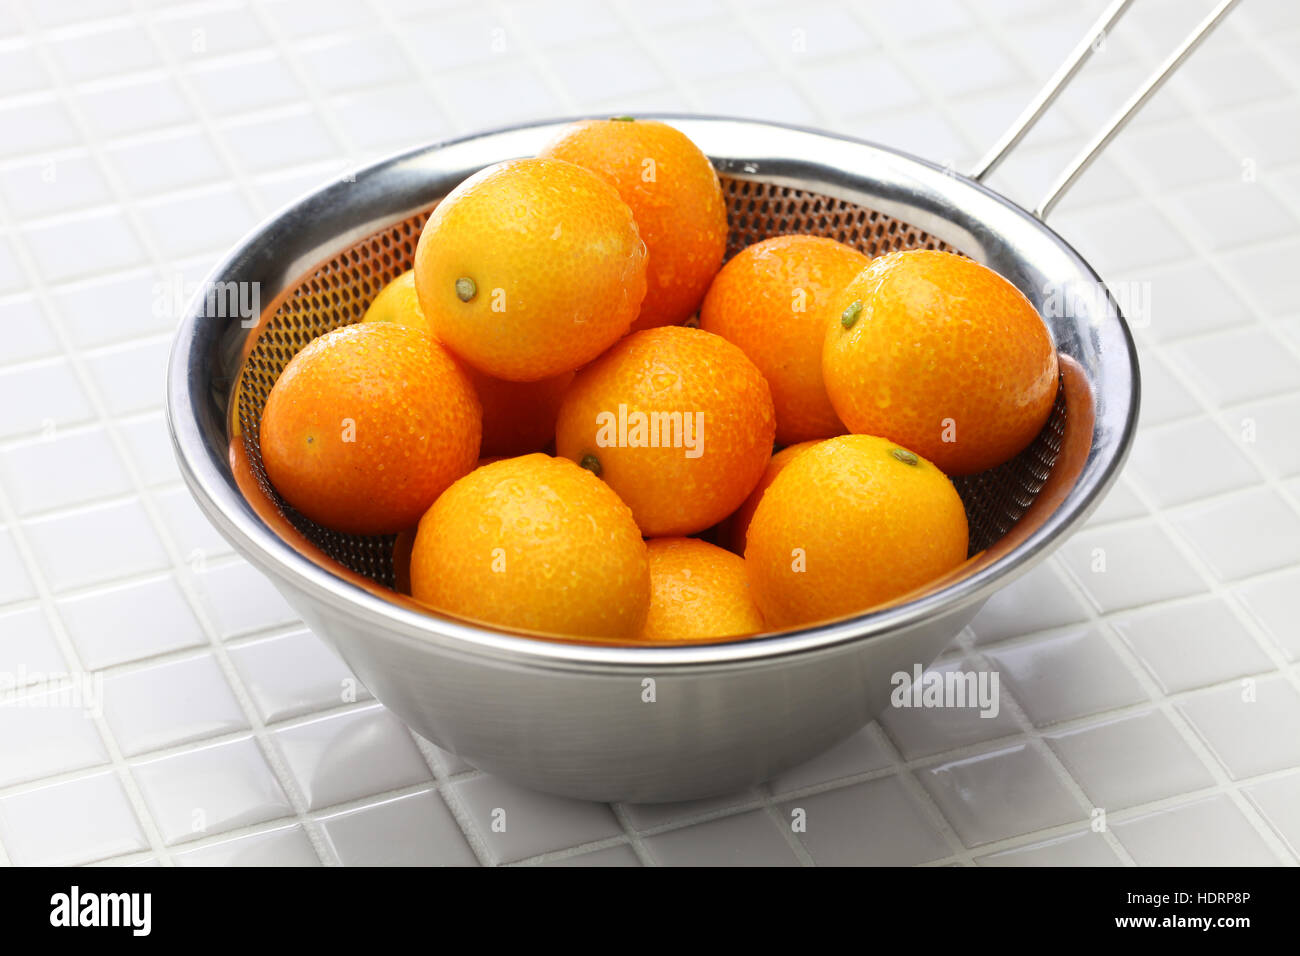 kumquat in the stainless steel bowl - Stock Image